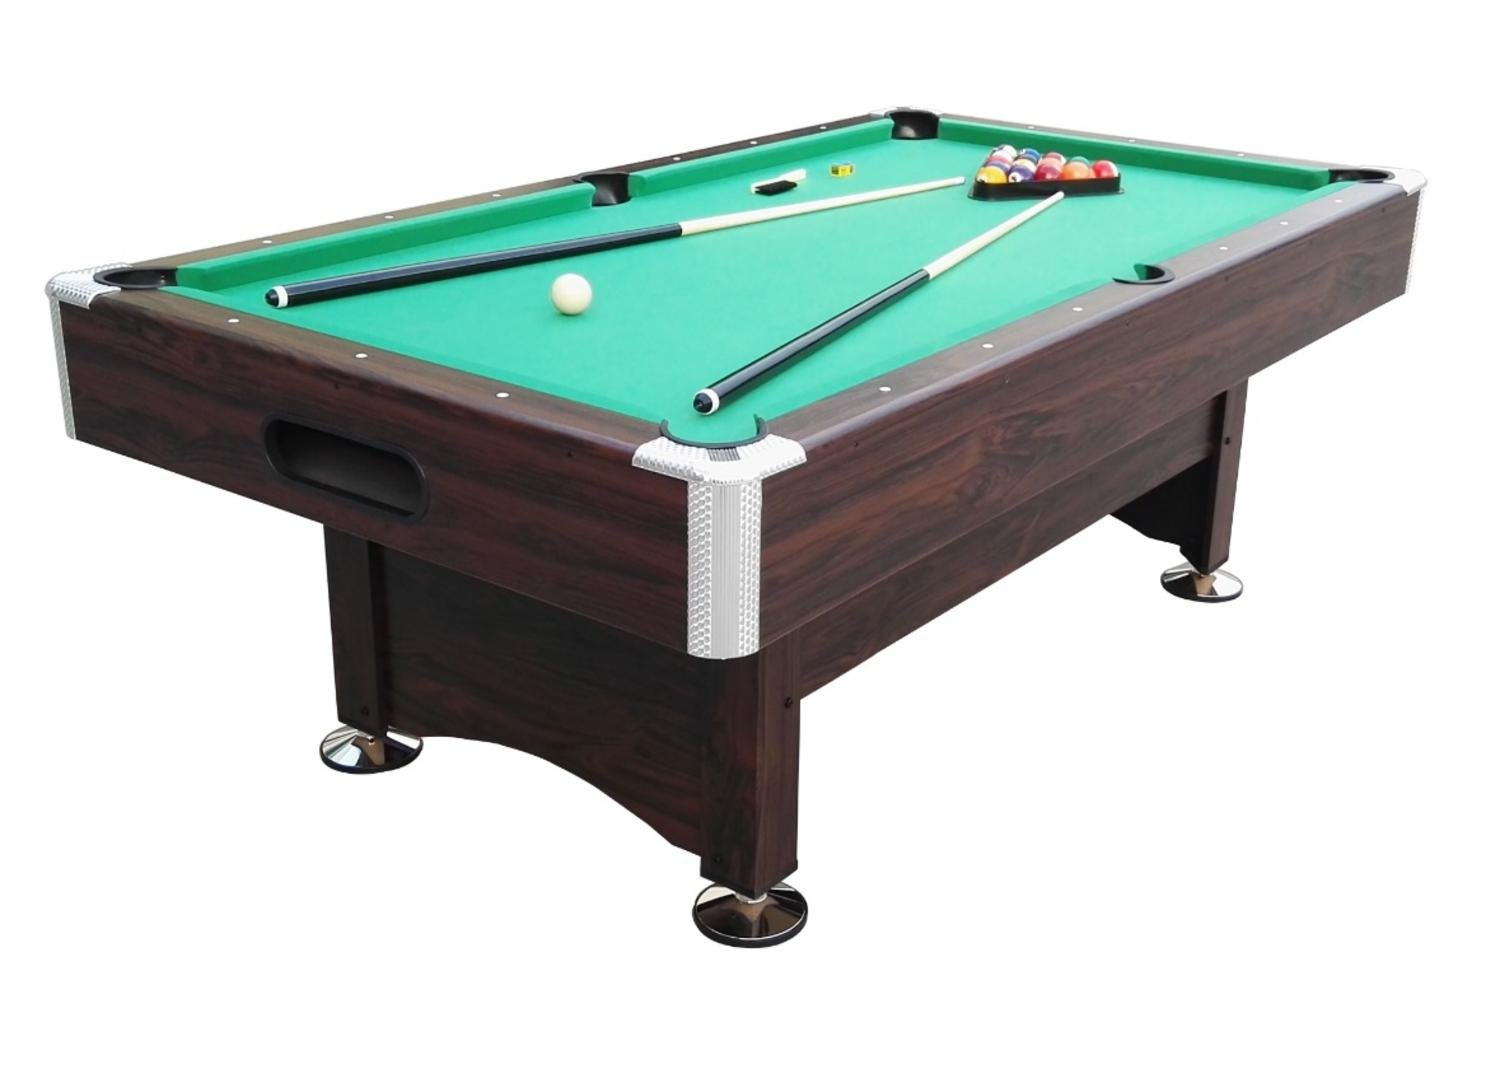 Pool Central B055-7FT Game Table, Brown/Green, 7' x 3.96'